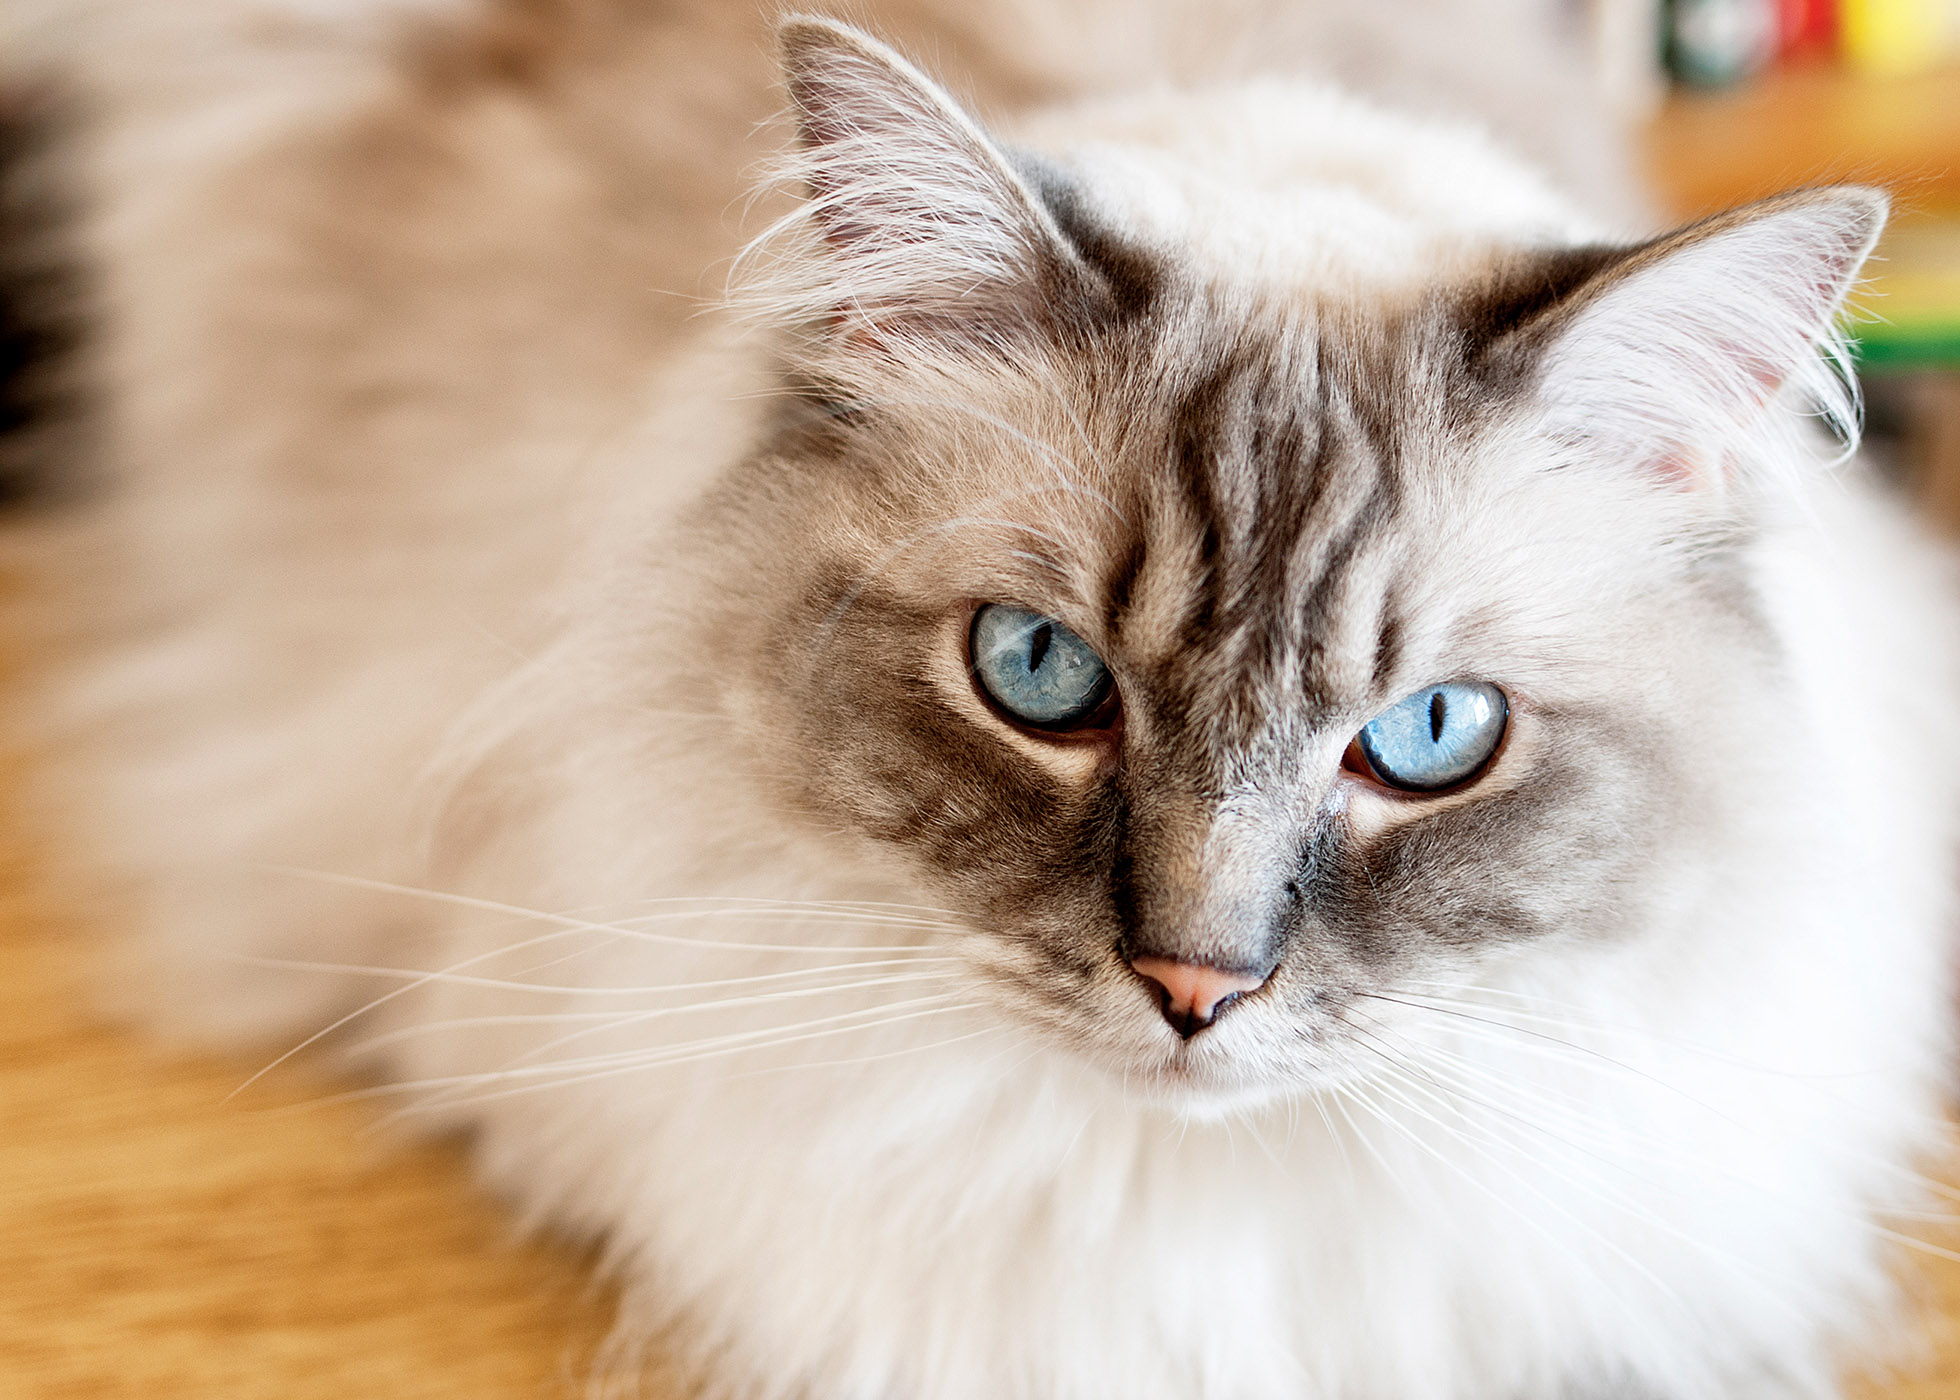 ragdoll cat with blue eyes looking at camera